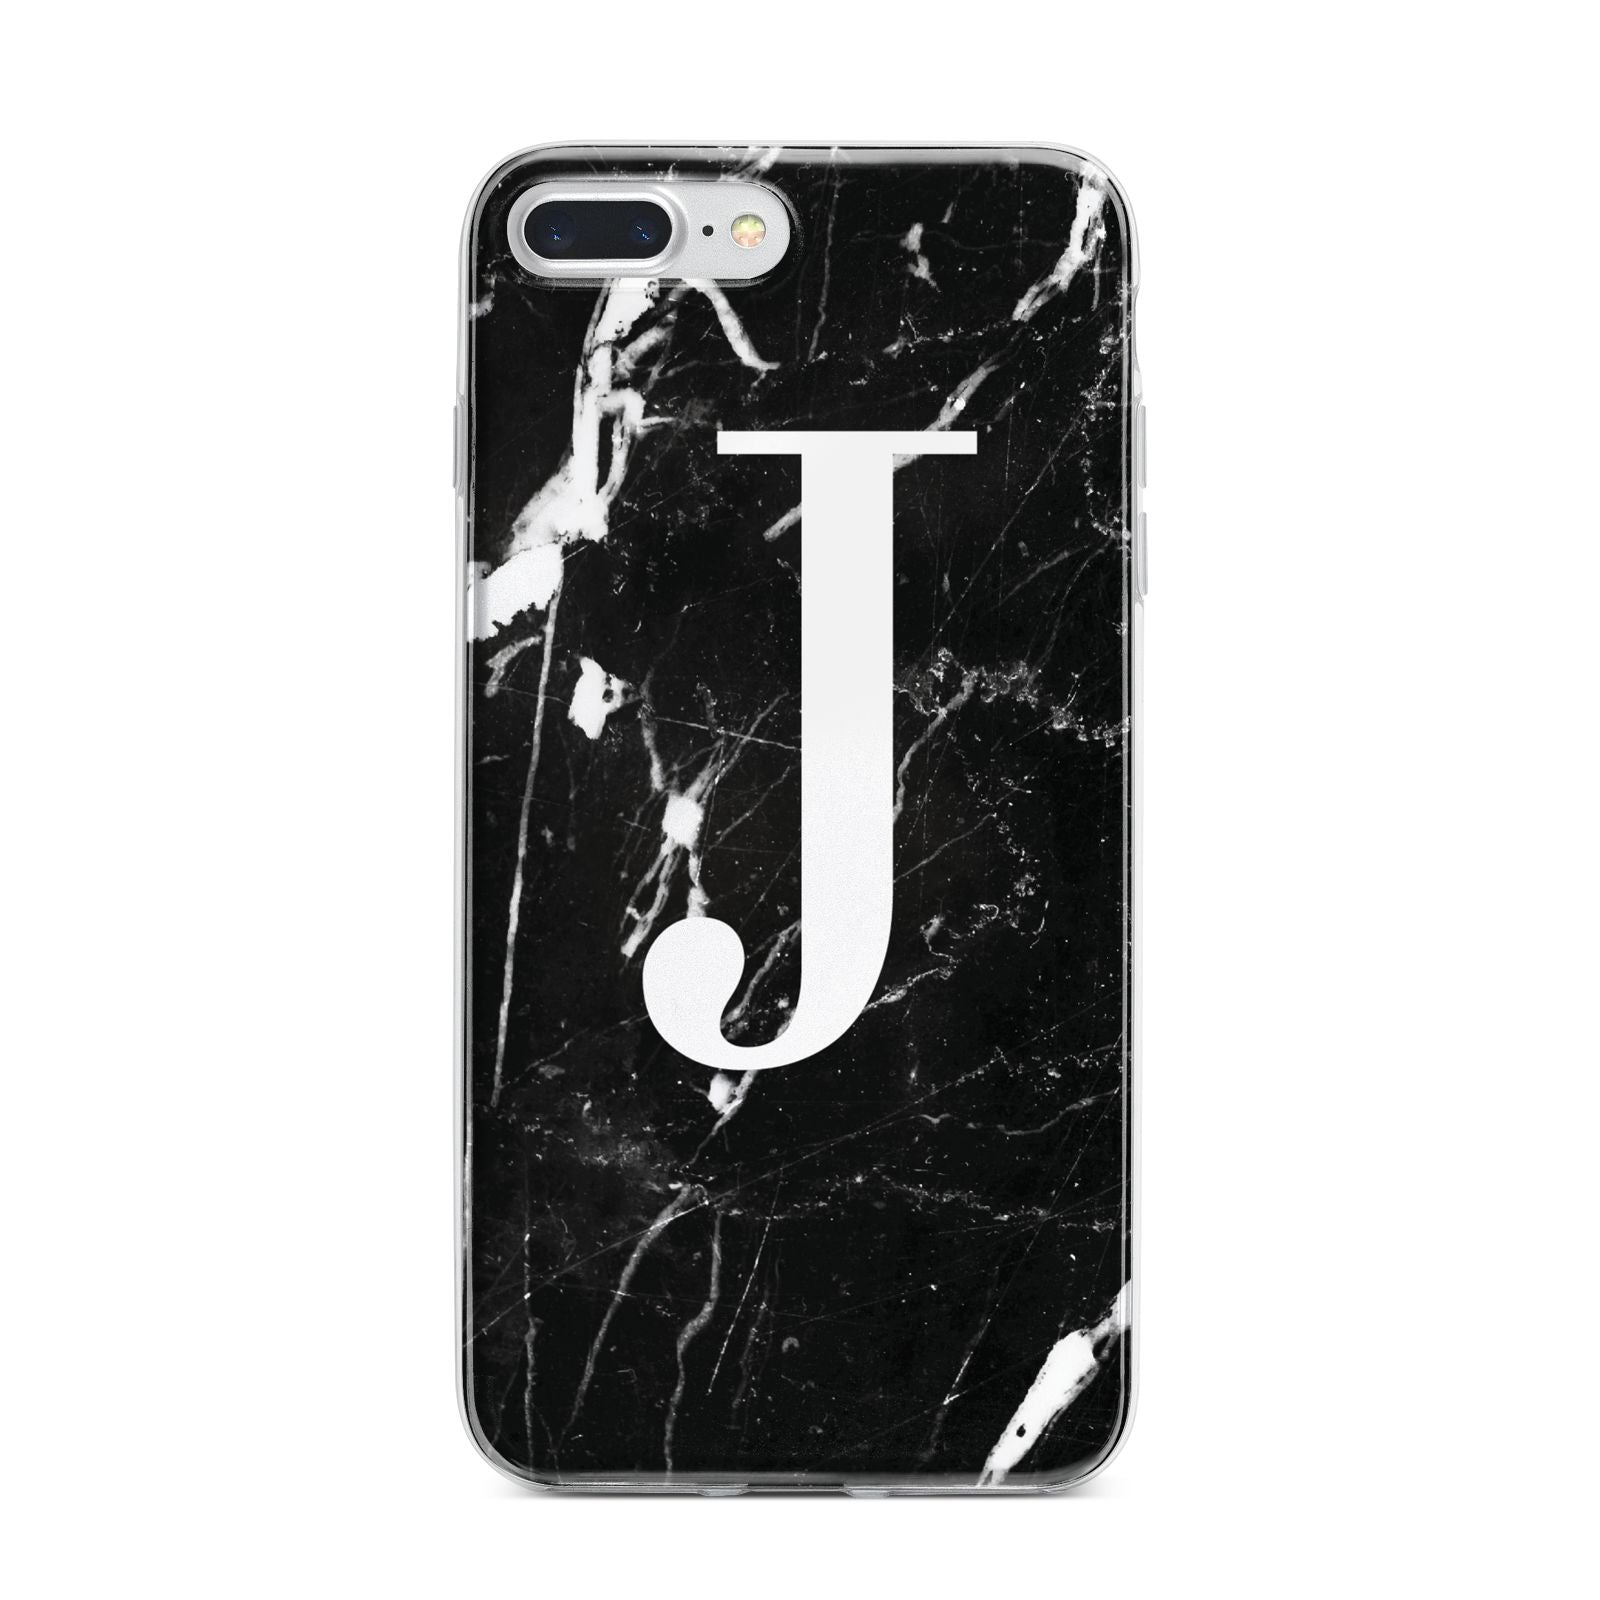 Marble White Initial Personalised iPhone 7 Plus Bumper Case on Silver iPhone